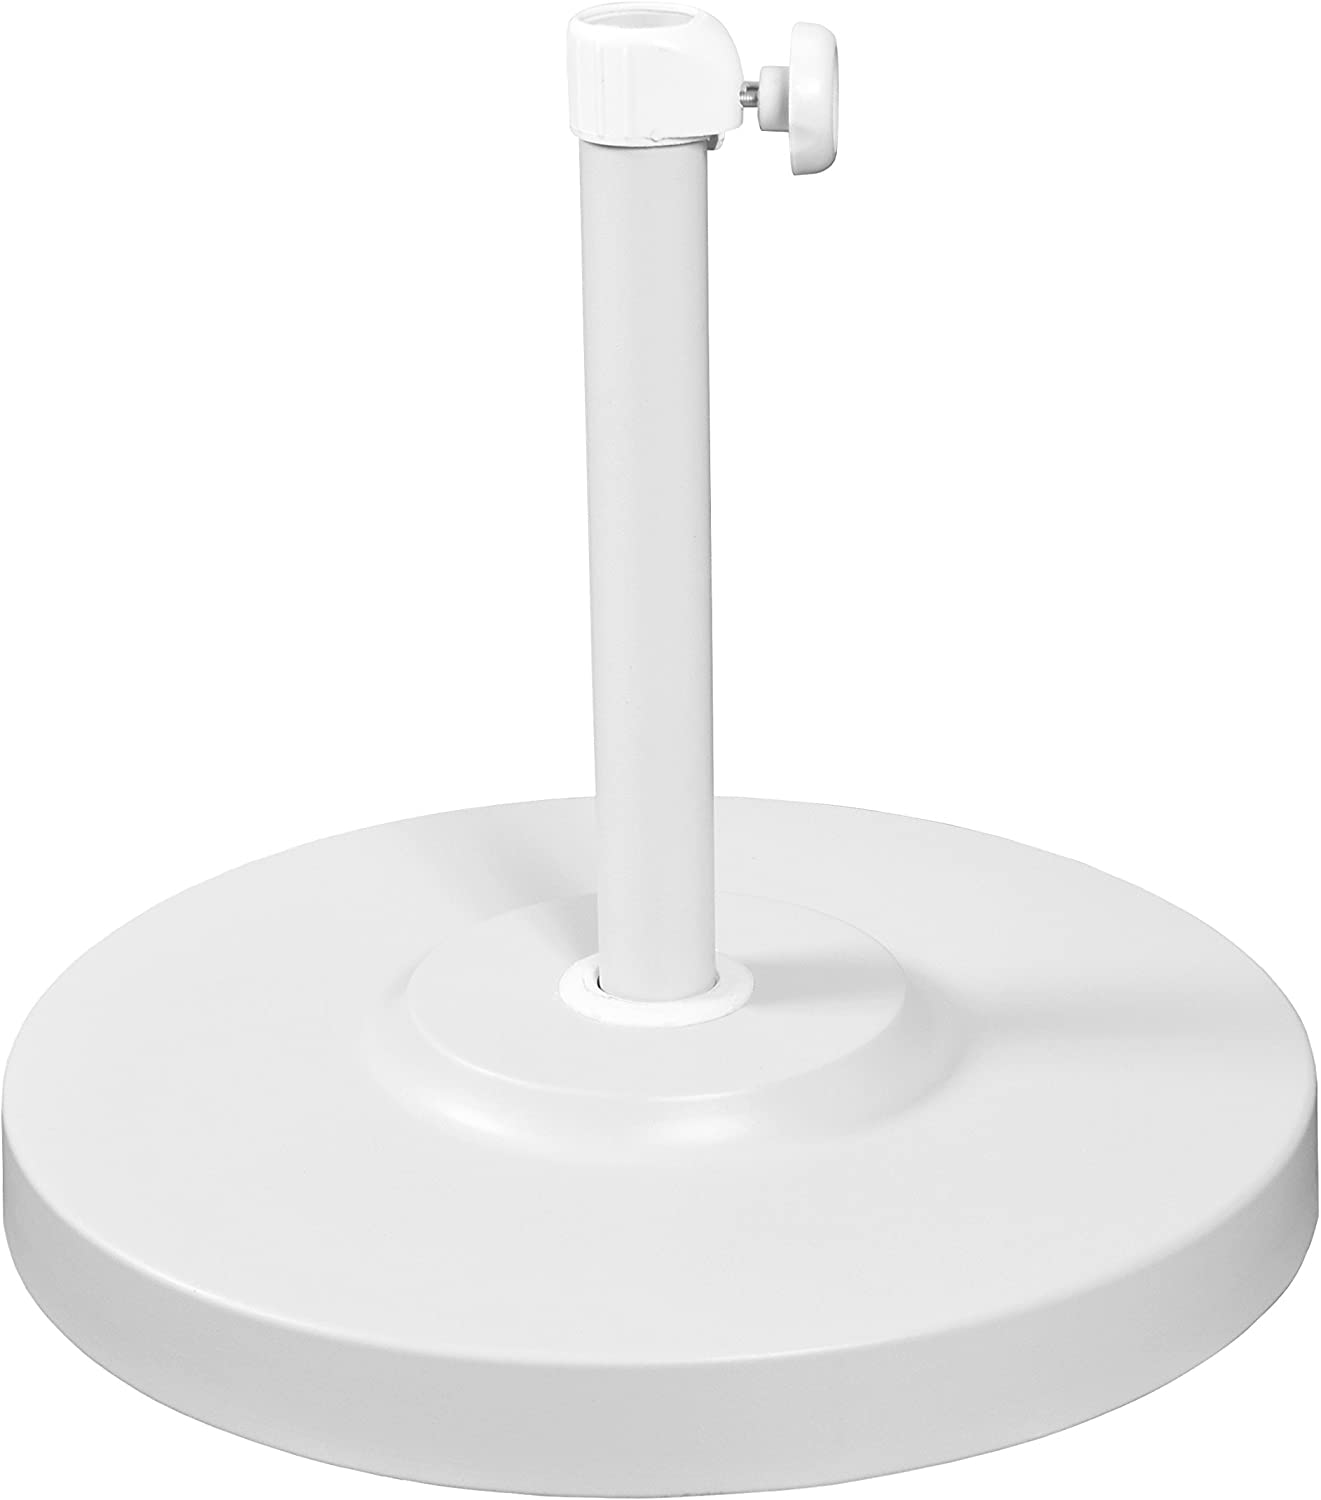 California Umbrella 50 lbs. Round Concrete Weighted Powdercoated Steel Umbrella Base, White Frame